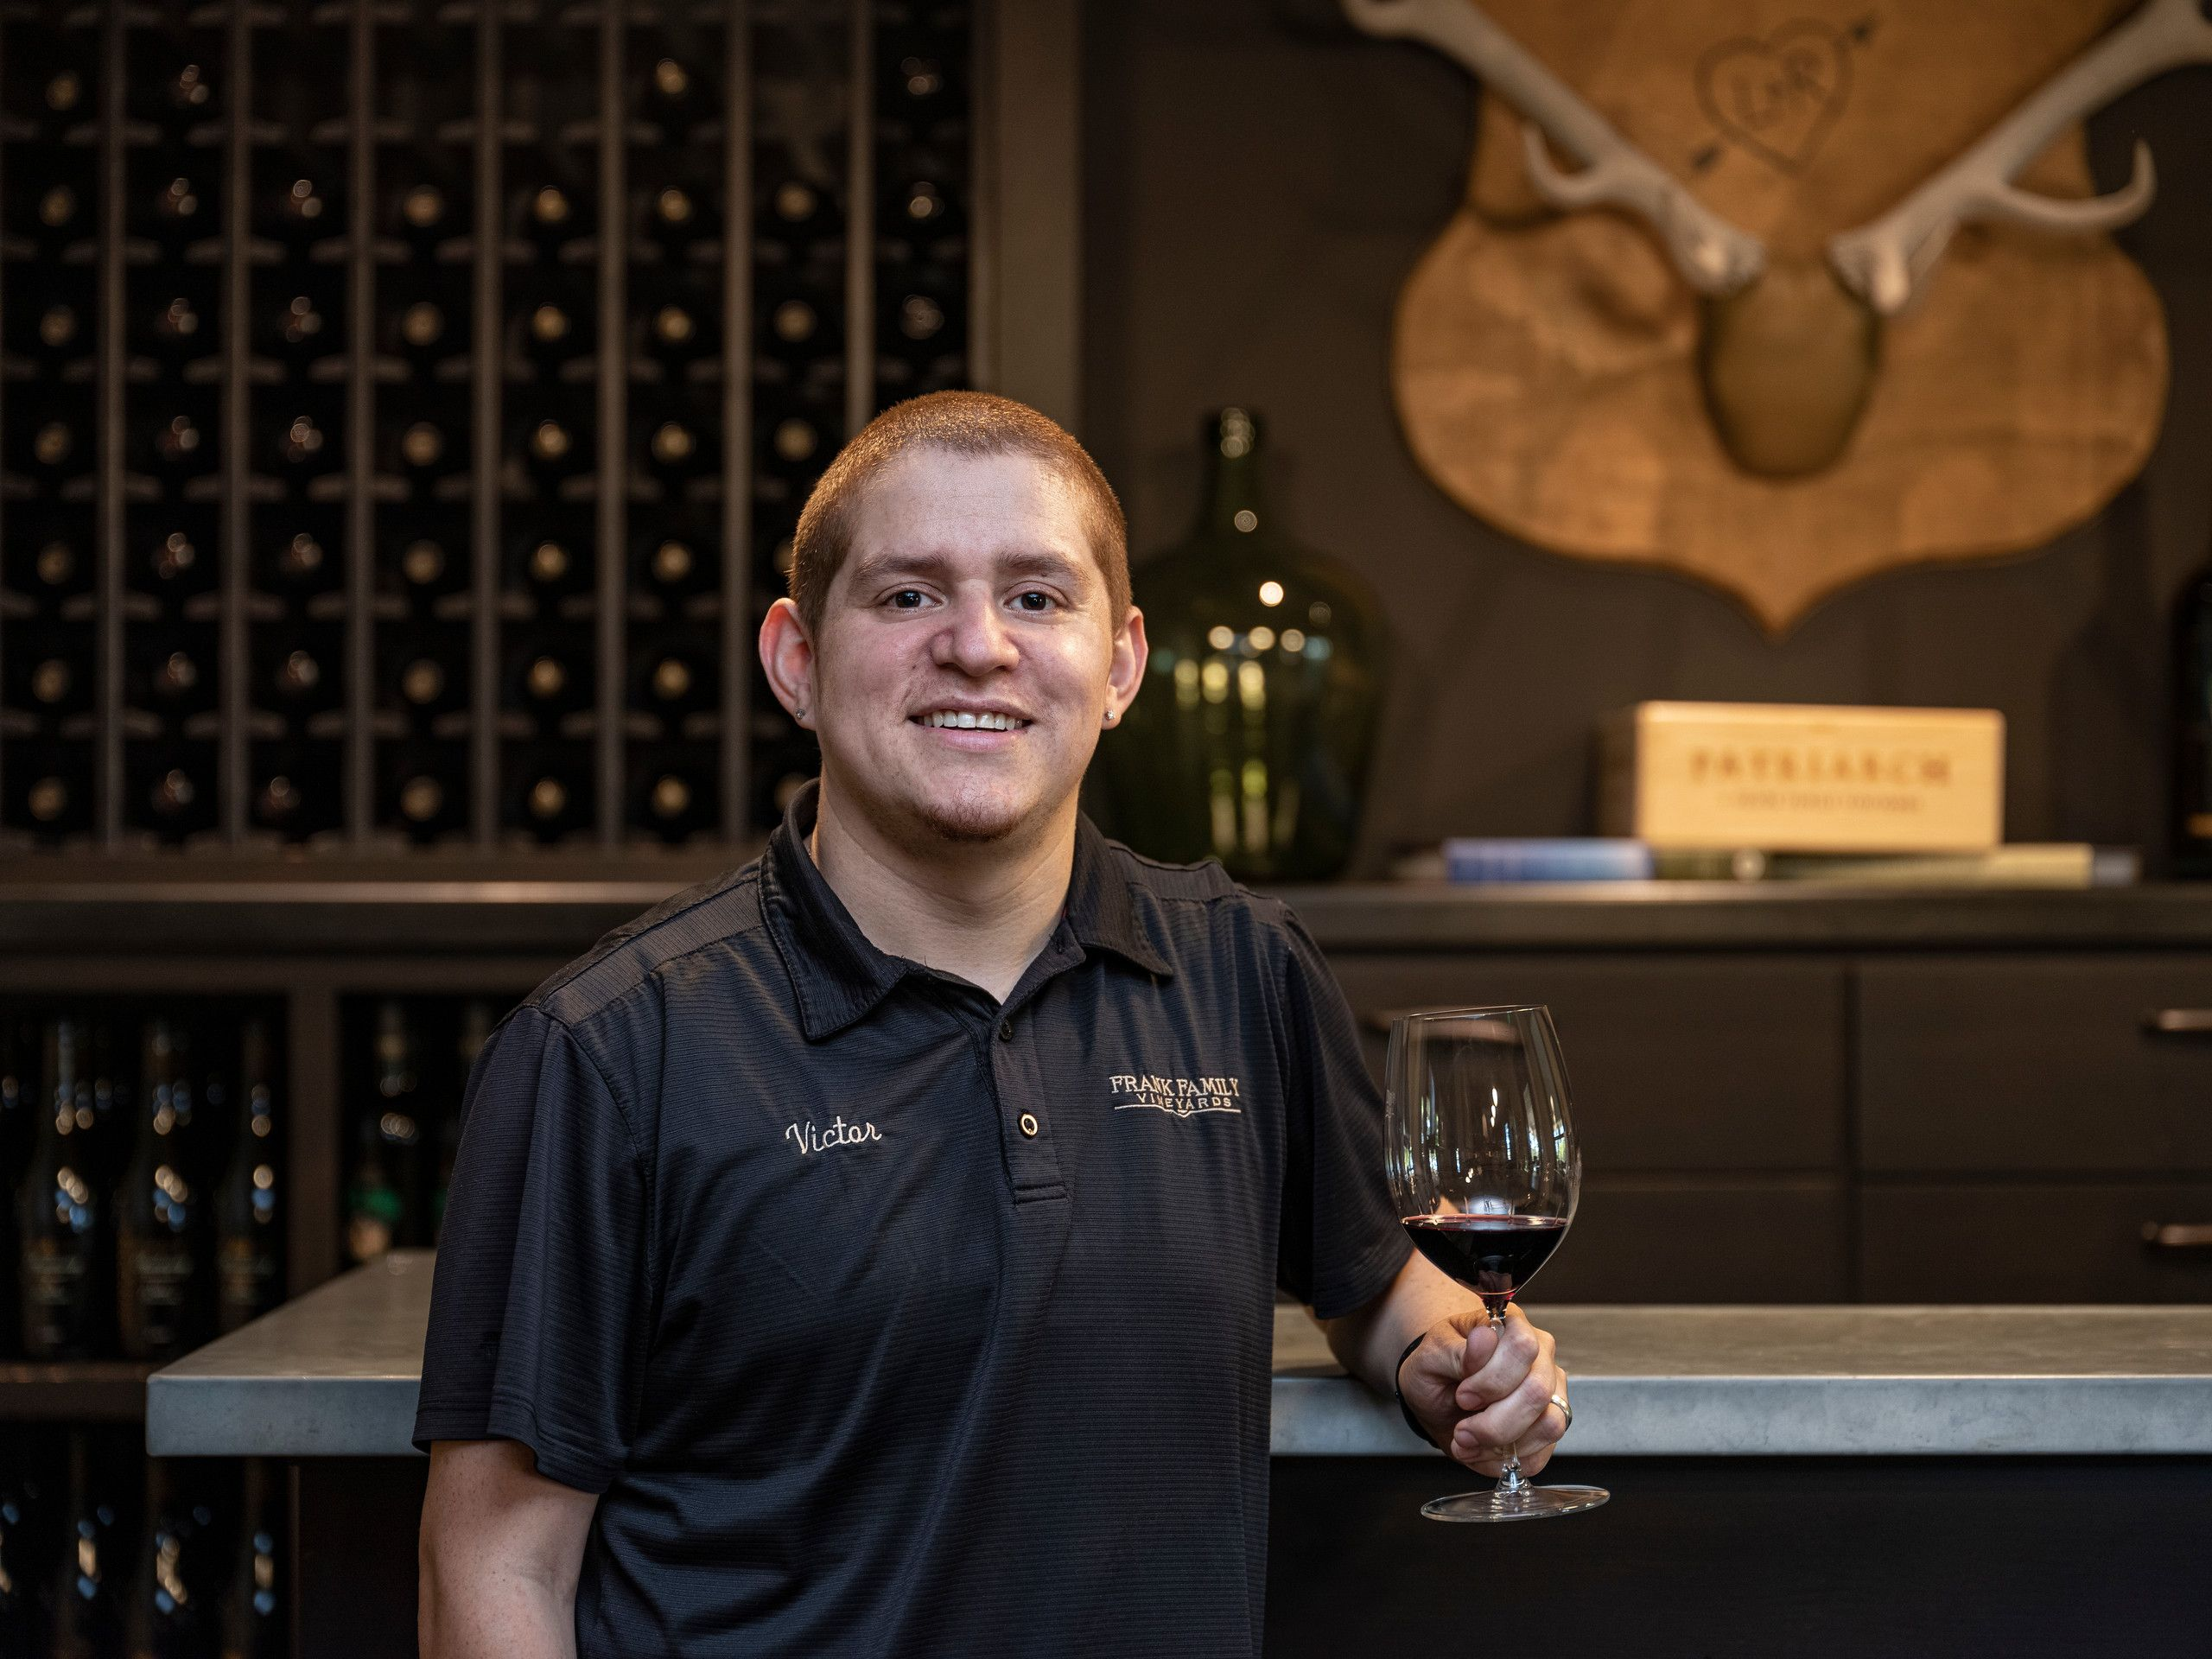 Frank Family Vineyards Promotes Two Long-time Employees To Management Positions photo